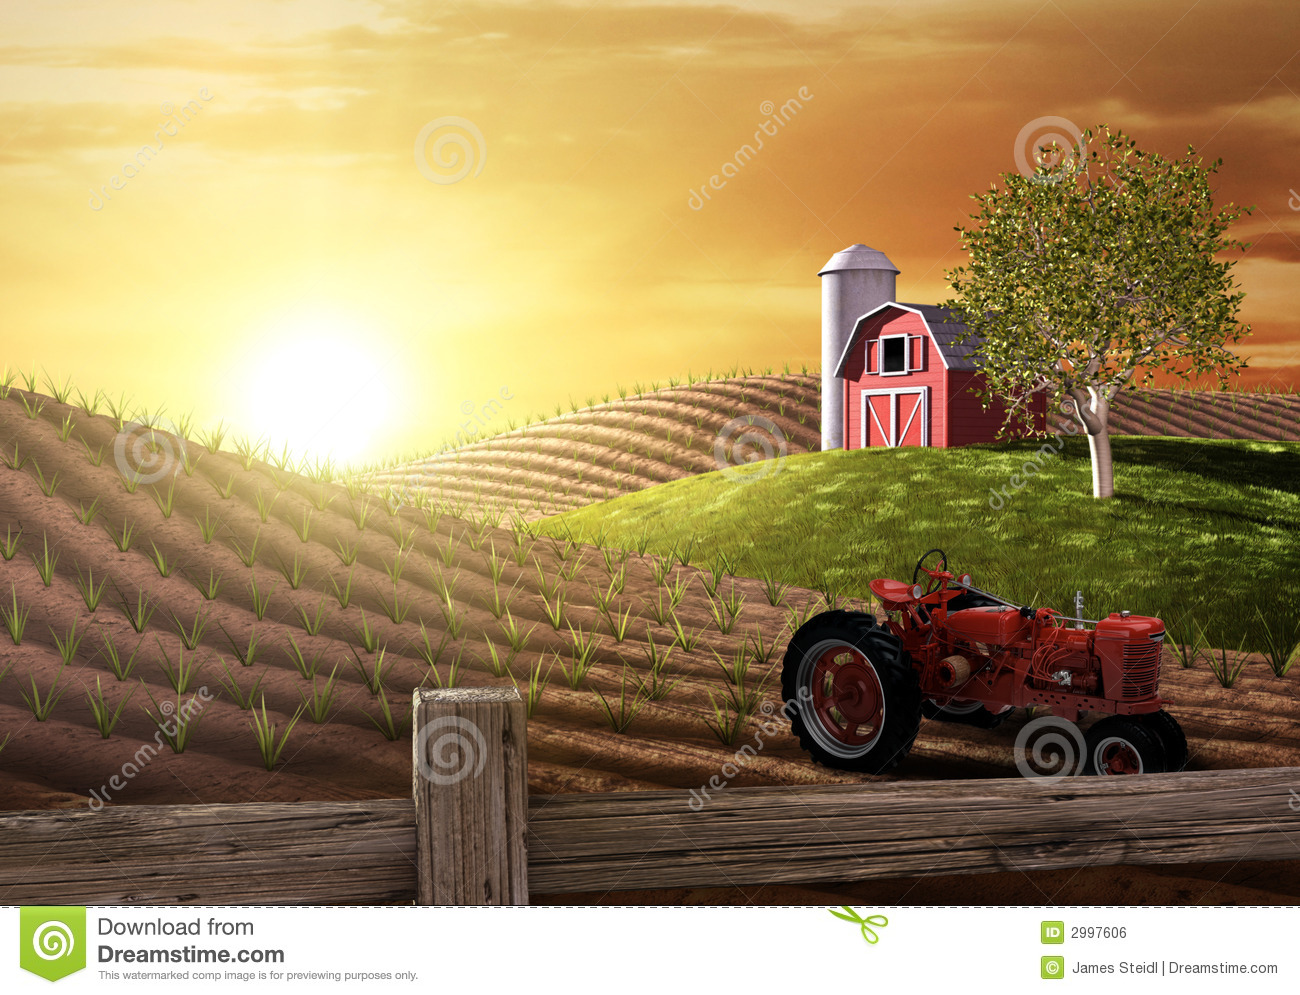 morning on the farm royalty free stock image image 2997606 Cblank Business Cards for Free Free Business Card Design Templates